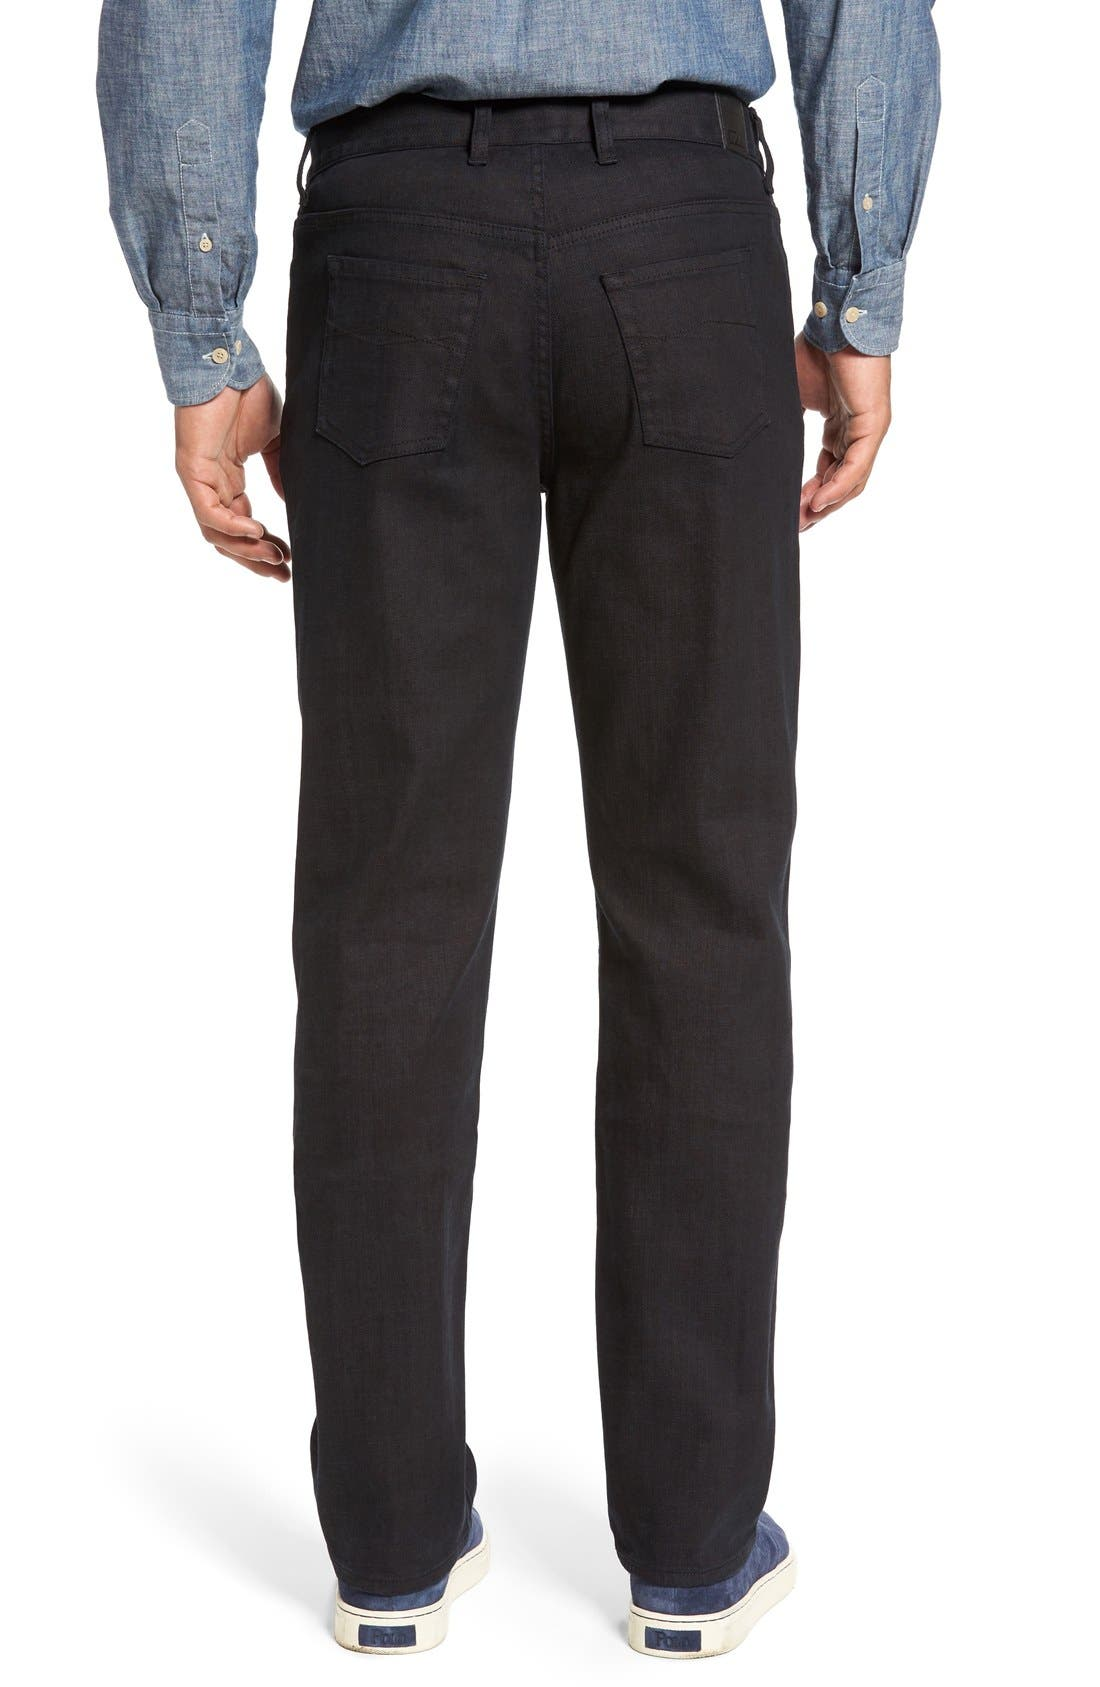 Greenwood Relaxed Fit Jeans,                             Alternate thumbnail 3, color,